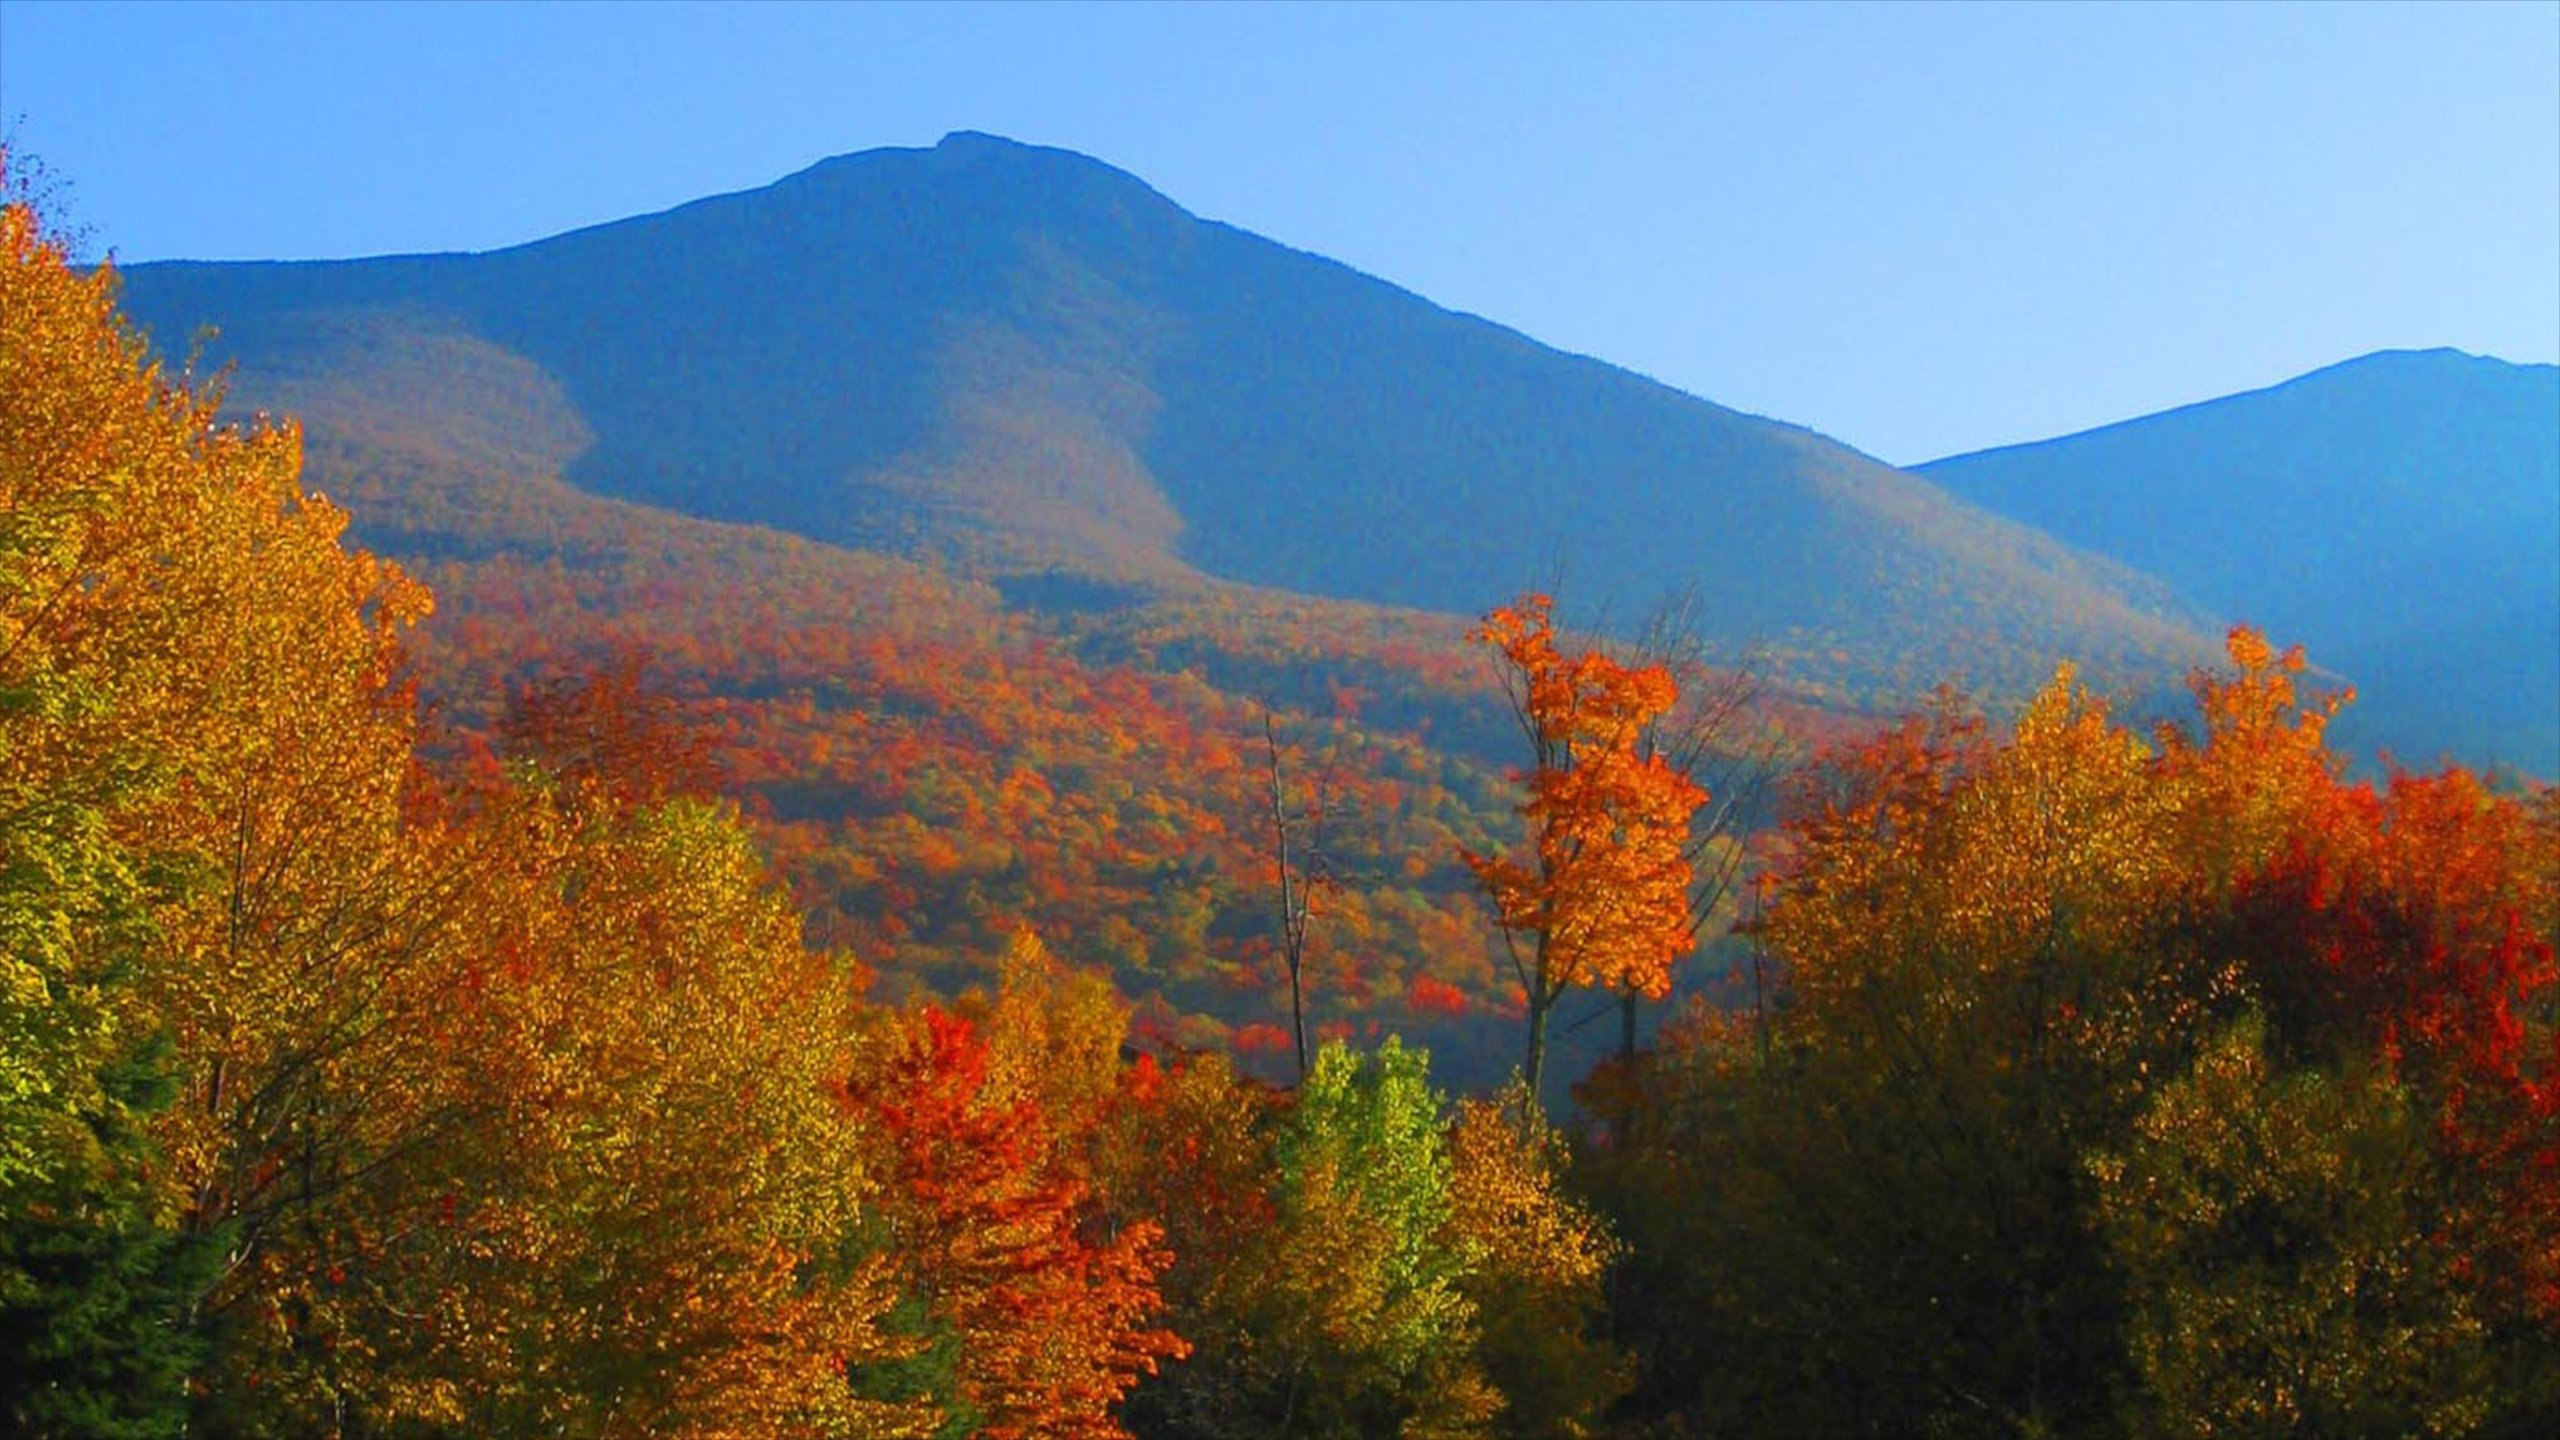 The 10 Best Hotels in White Mountains New Hampshire from